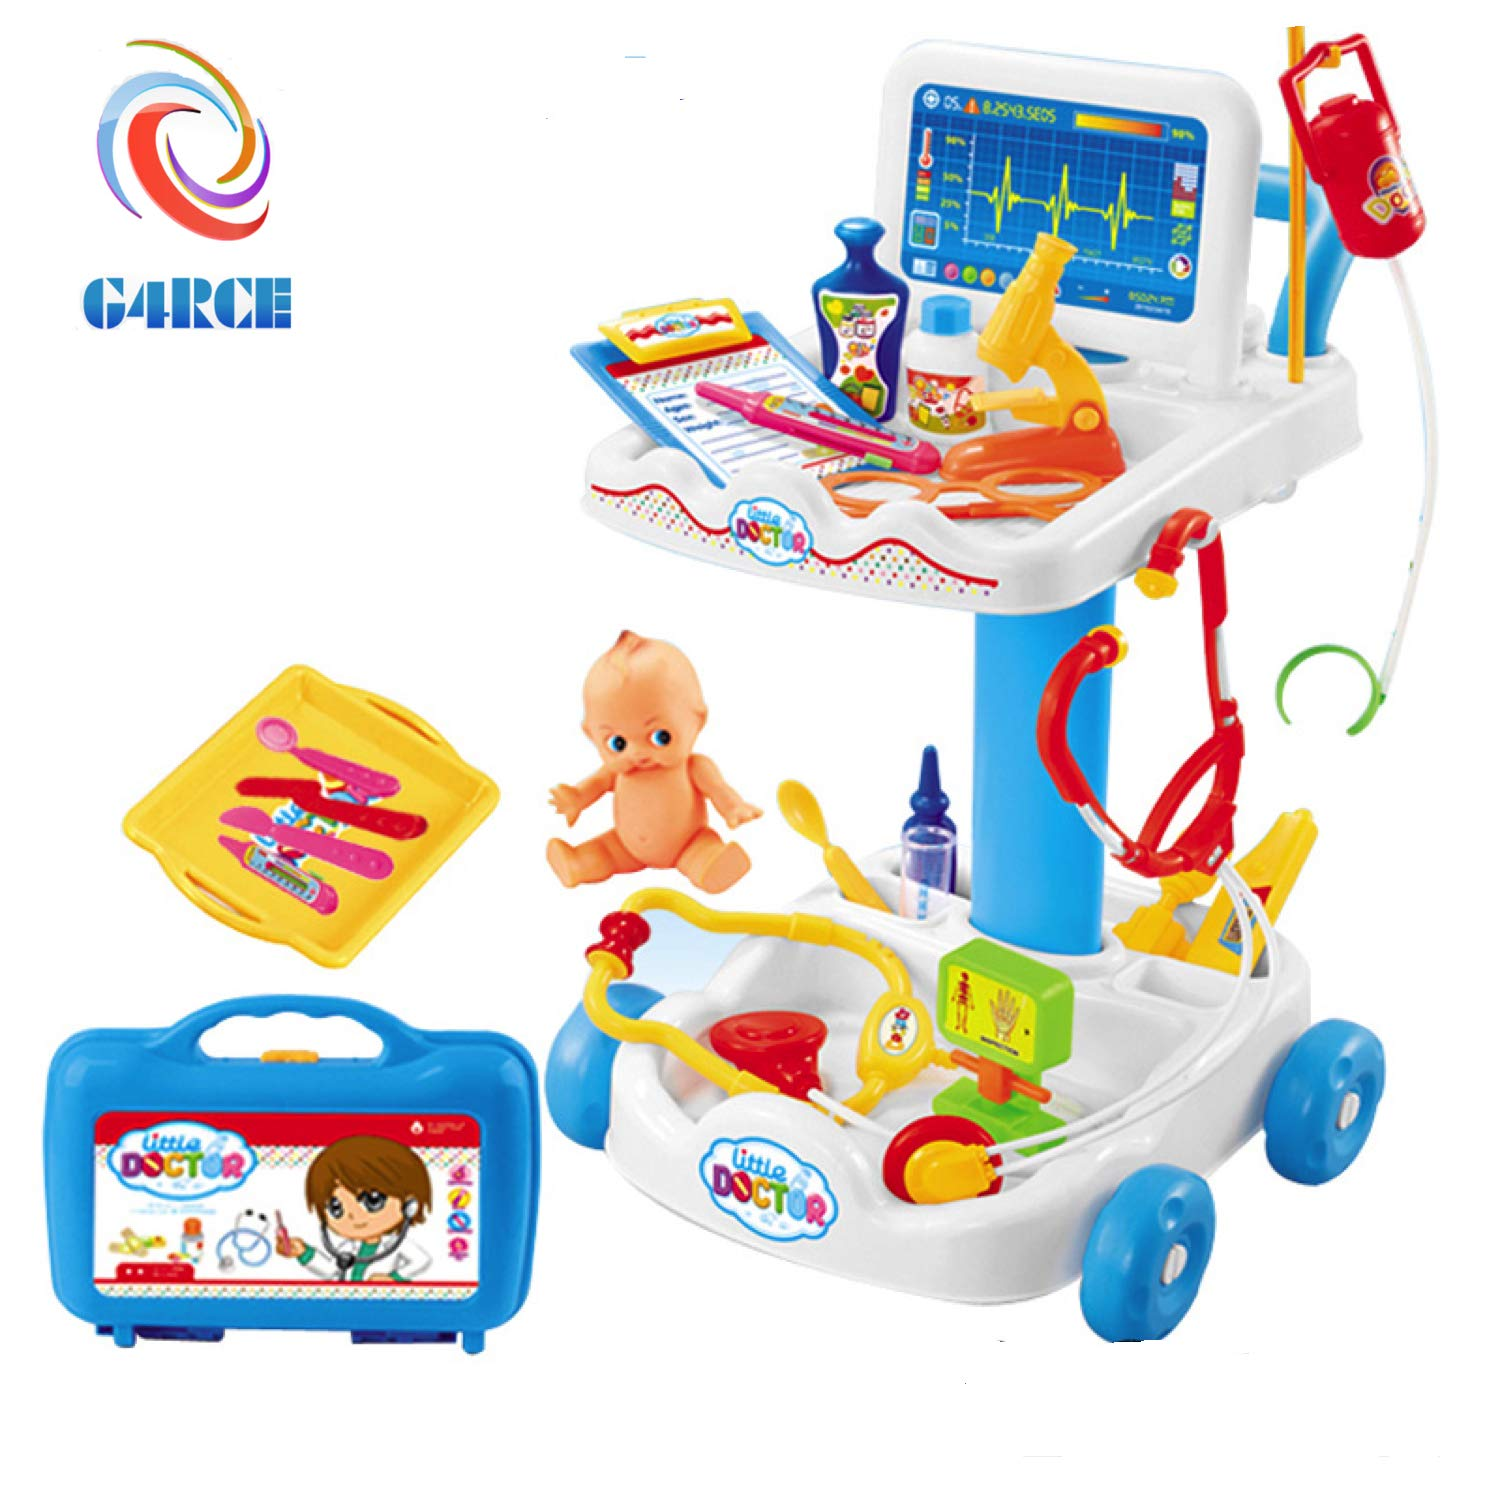 G4RCE® Kids Education Role Play Doctor Nurses Toy Medical Set Kit Hard Carry Case + 36pcs Accessory Kit Play Best For BIrthday